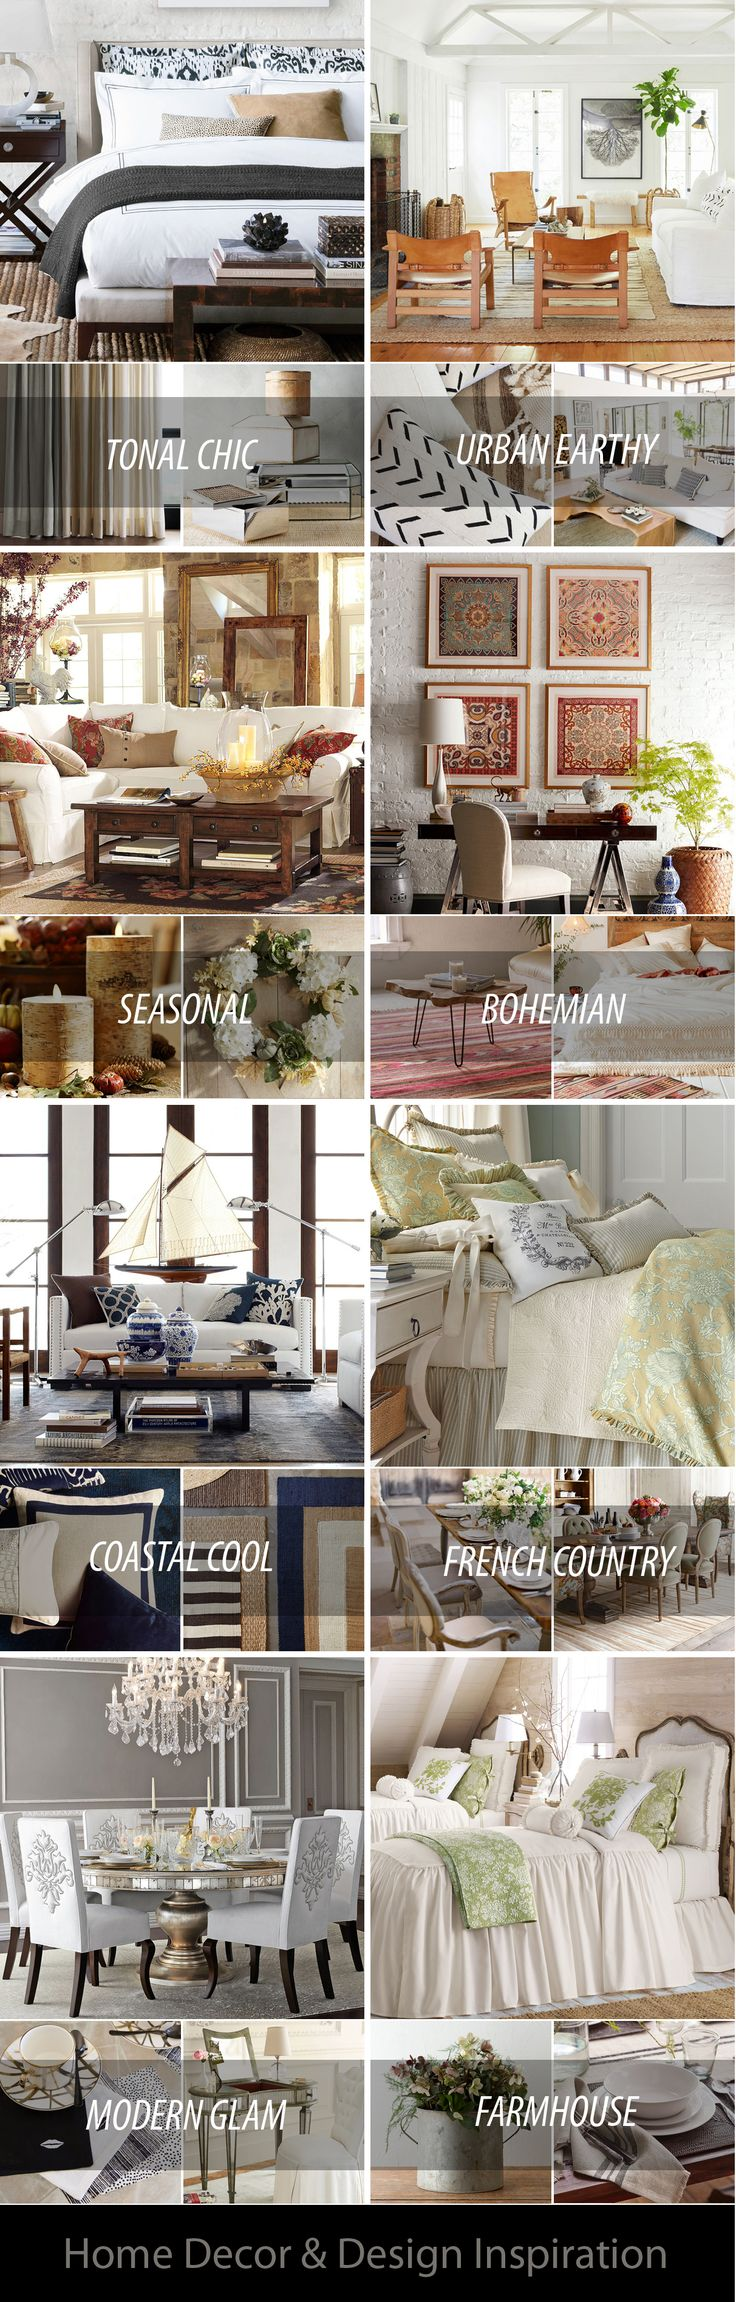 home decor by individual styles - In Home Decor